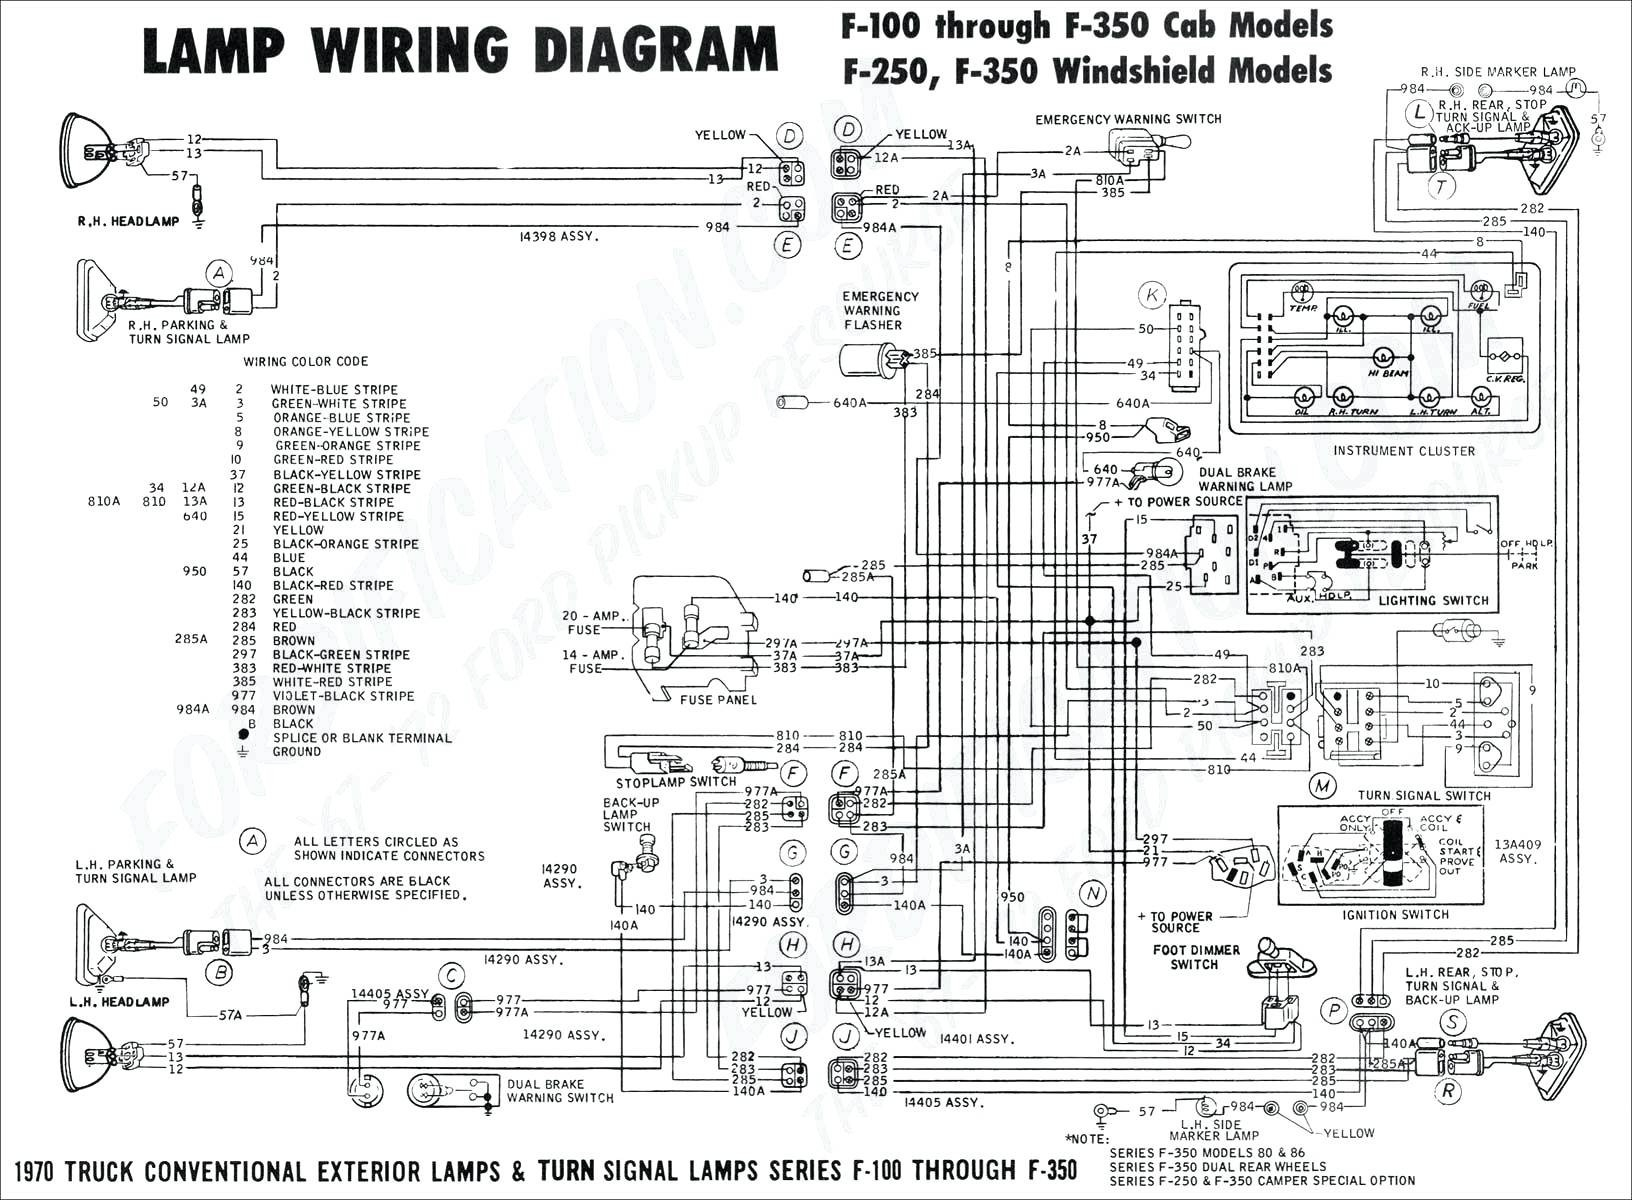 2005 F150 Trailer Wiring Diagram Wiring Diagram Grain Alternator A Grain Alternator A Lasuiteclub It